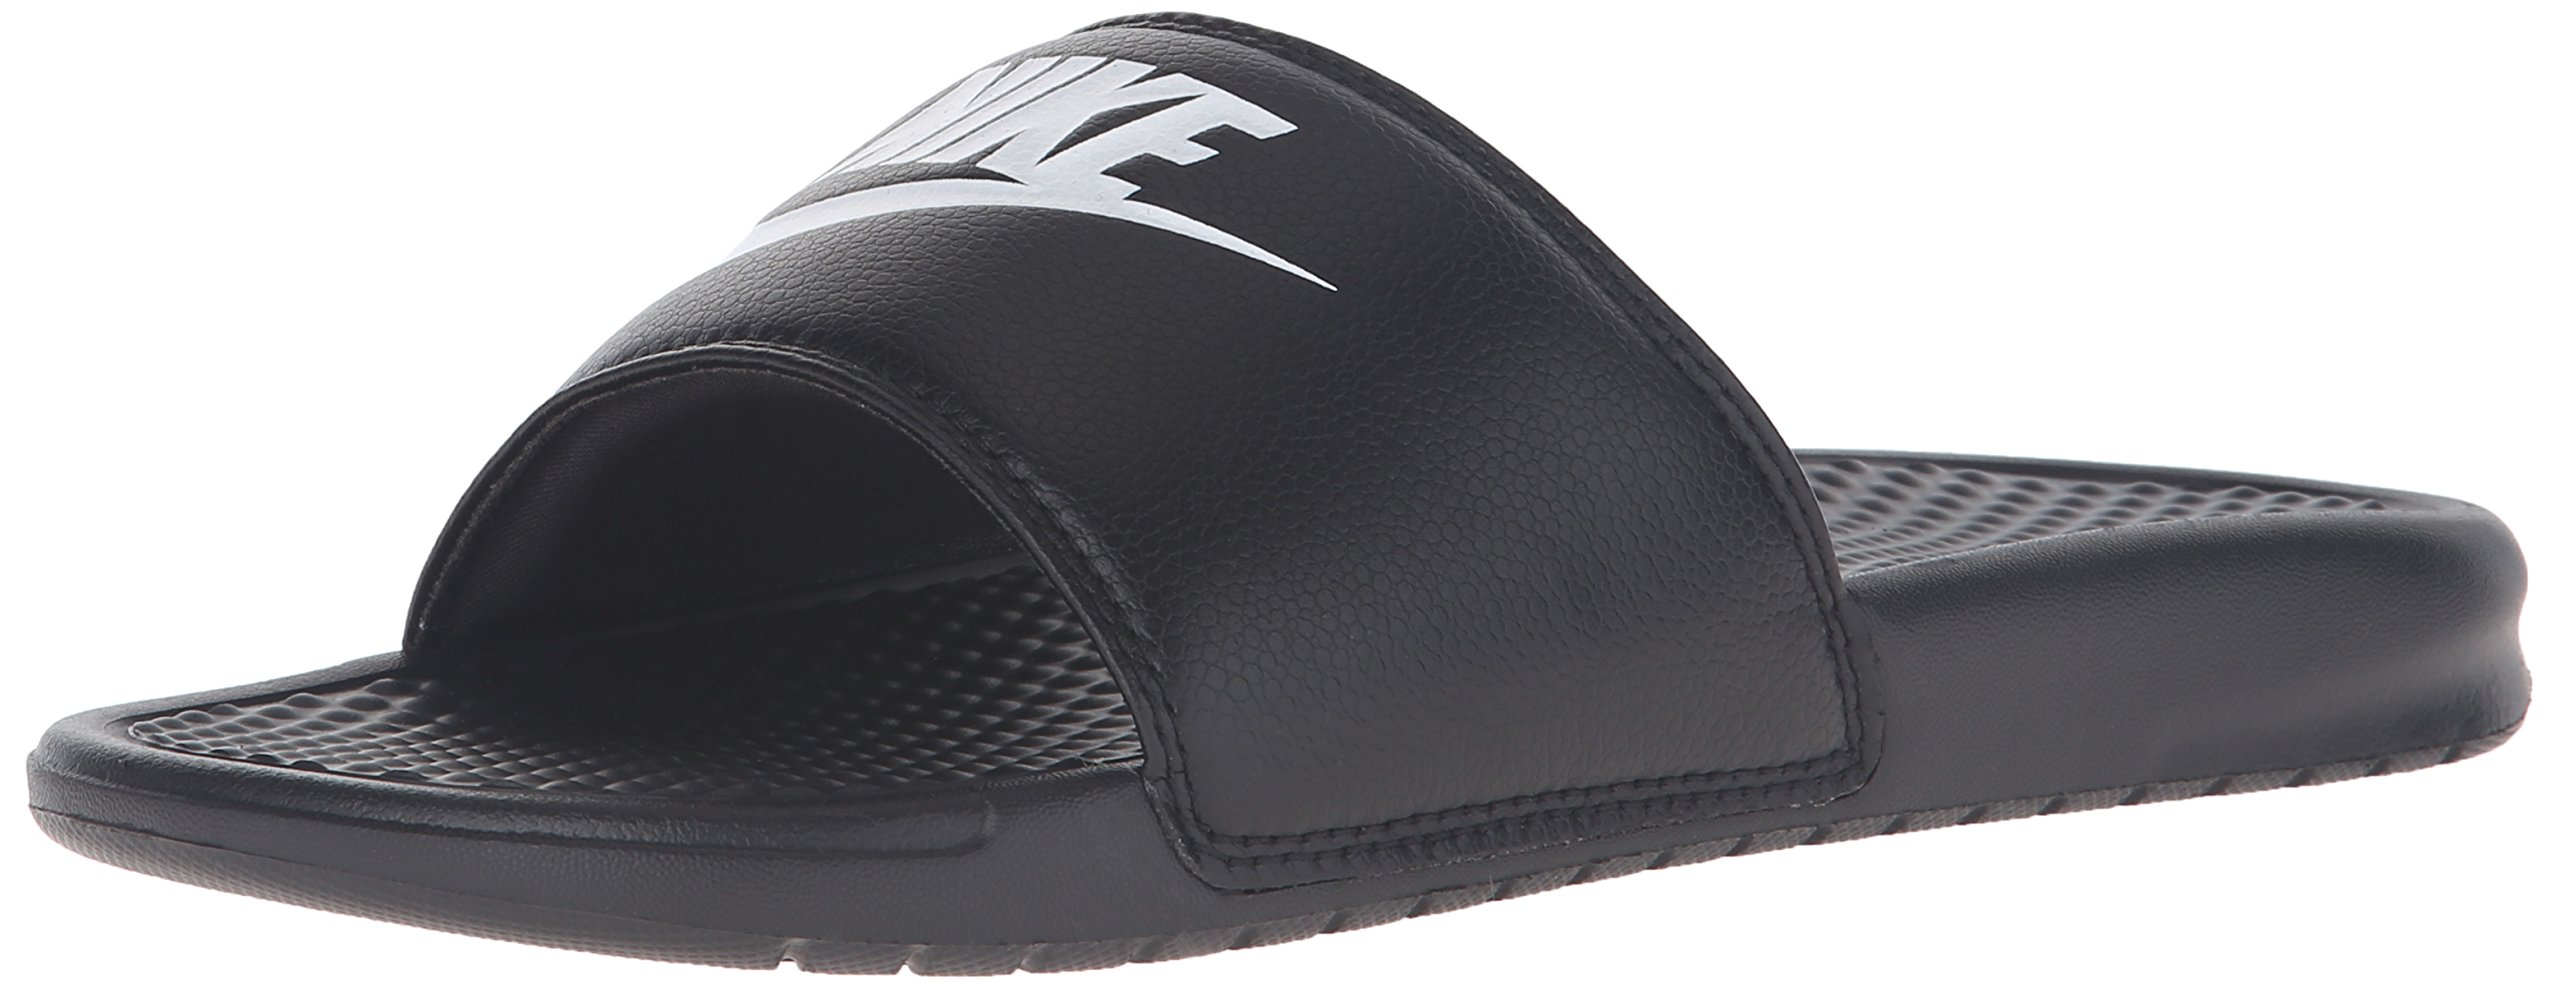 Nike Men's Benassi Just Do It Athletic Sandal, black/white, 14 D(M) US